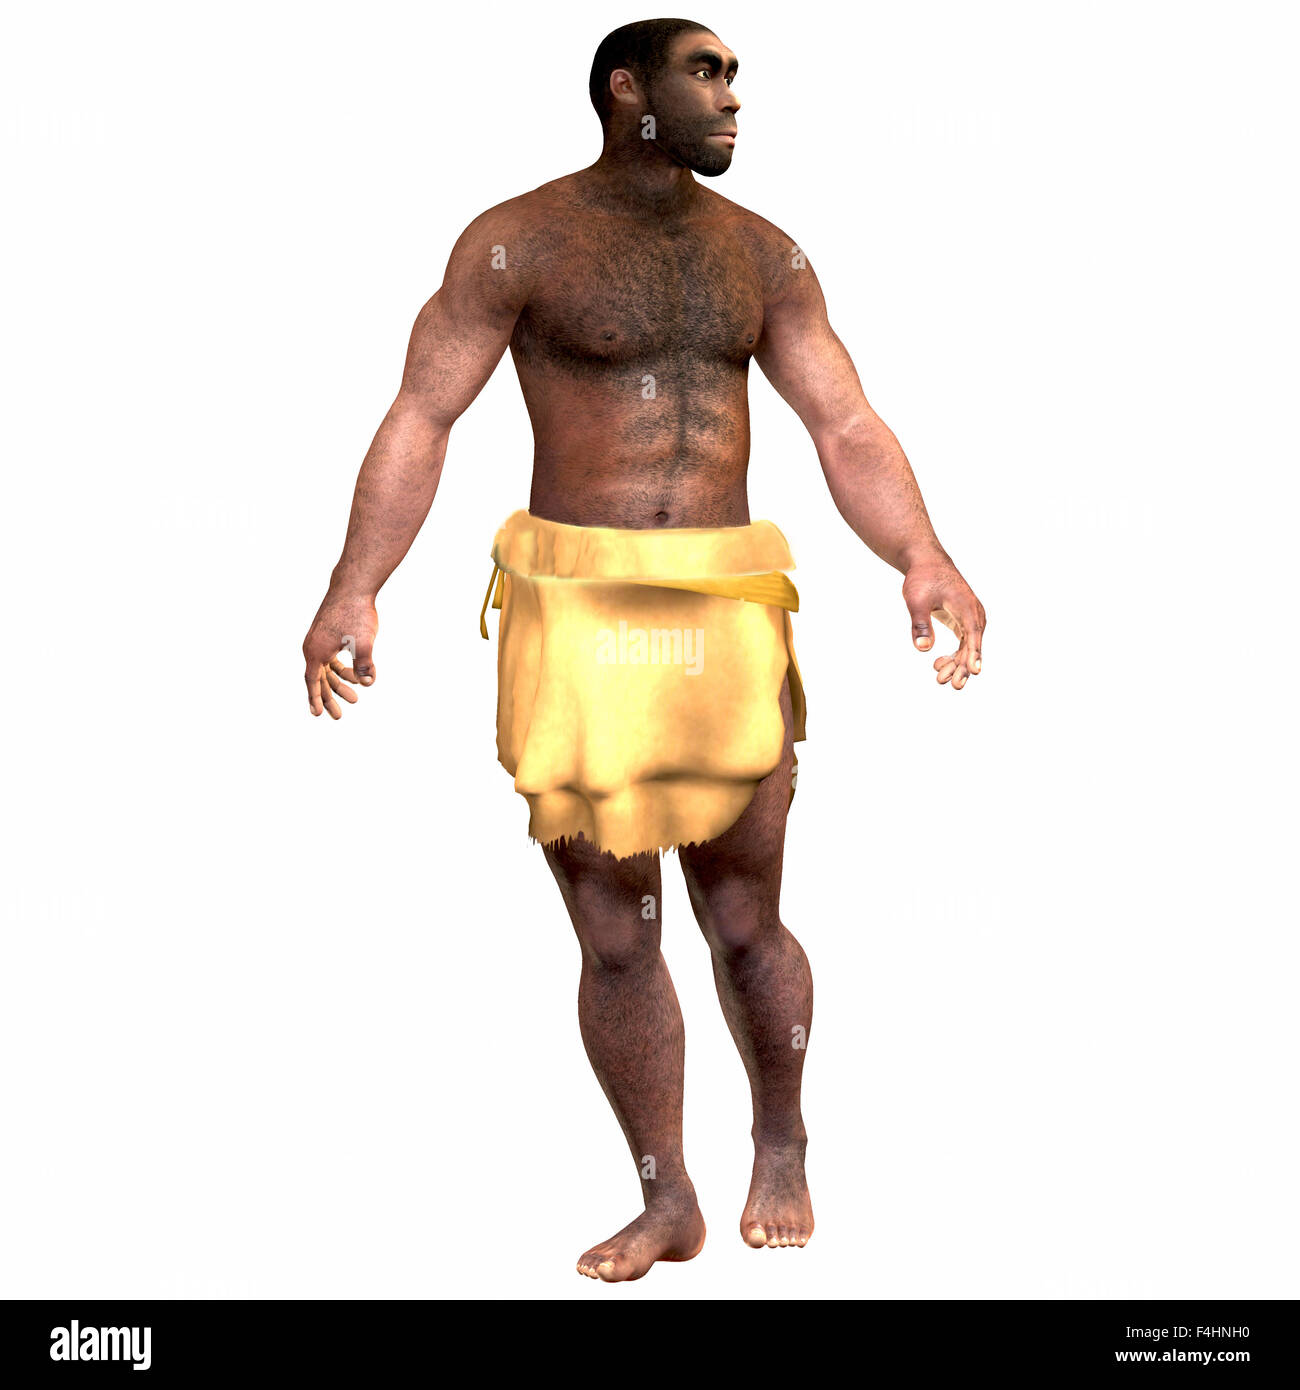 Homo Erectus is an extinct species of human that lived during the Pleistocene Period in Eurasia and Africa. - Stock Image